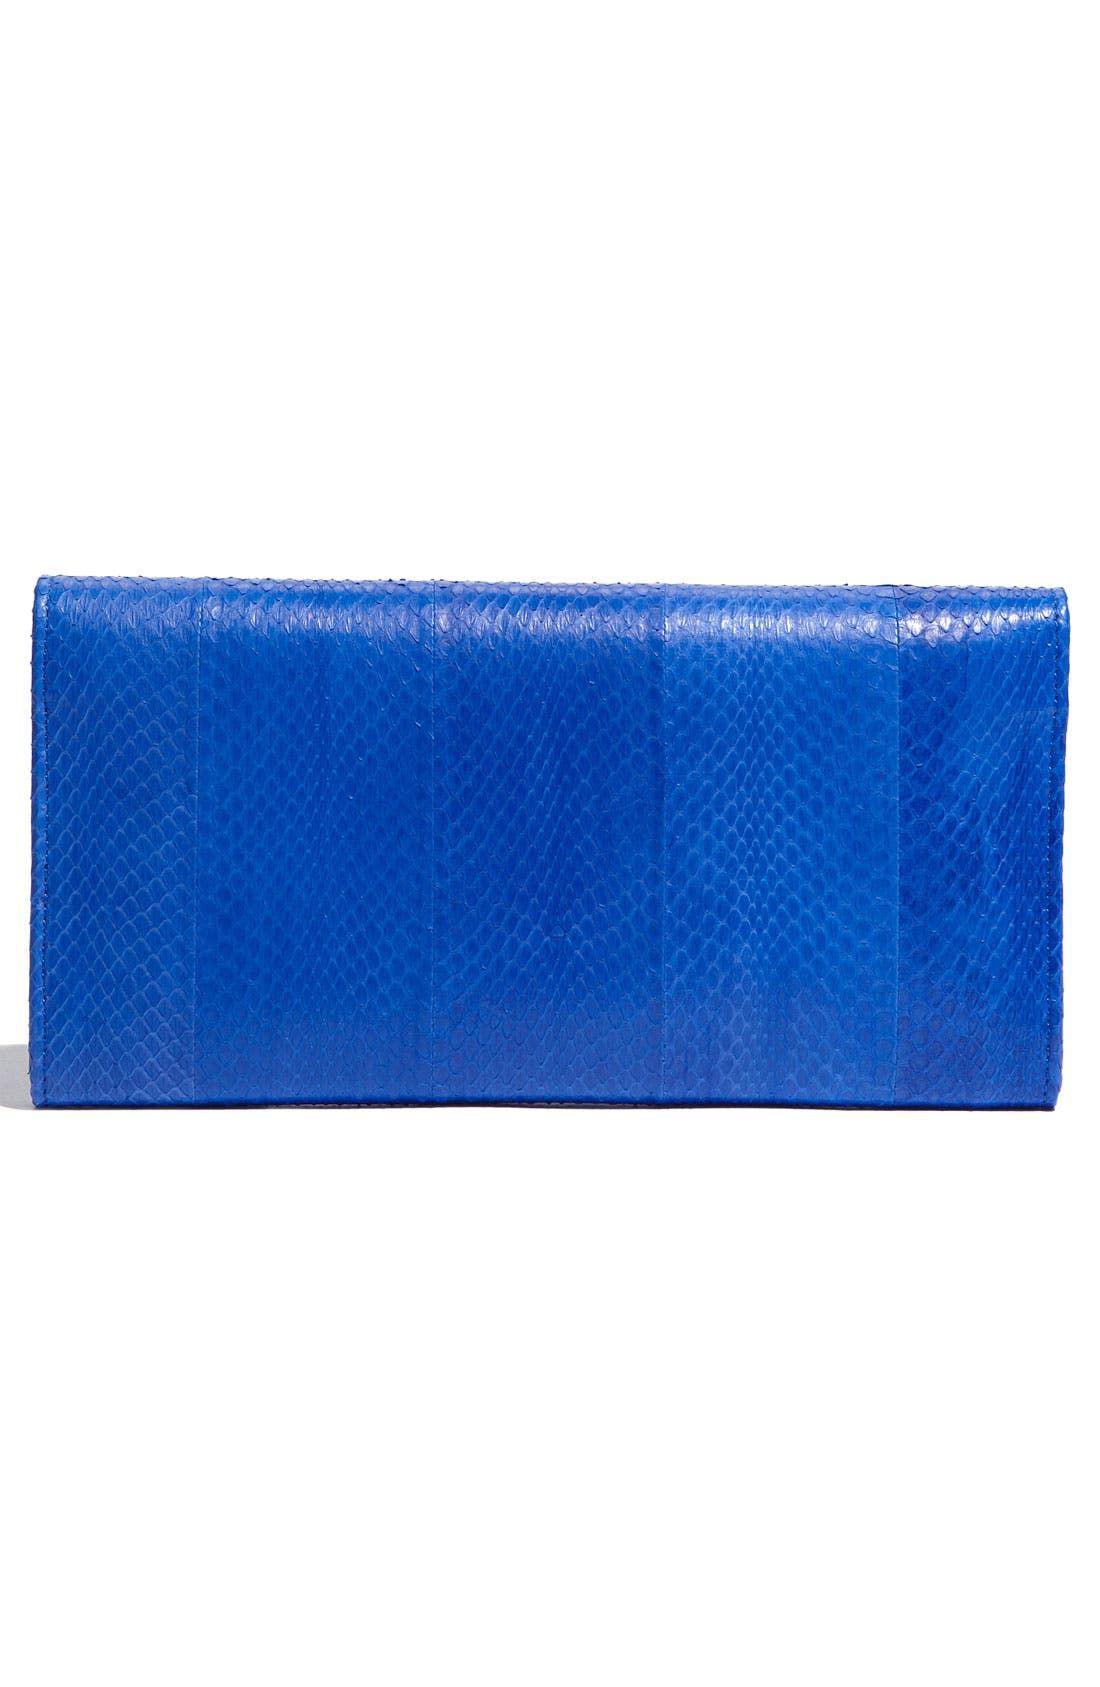 Alternate Image 4  - Jimmy Choo 'Reese' Embossed Leather Clutch